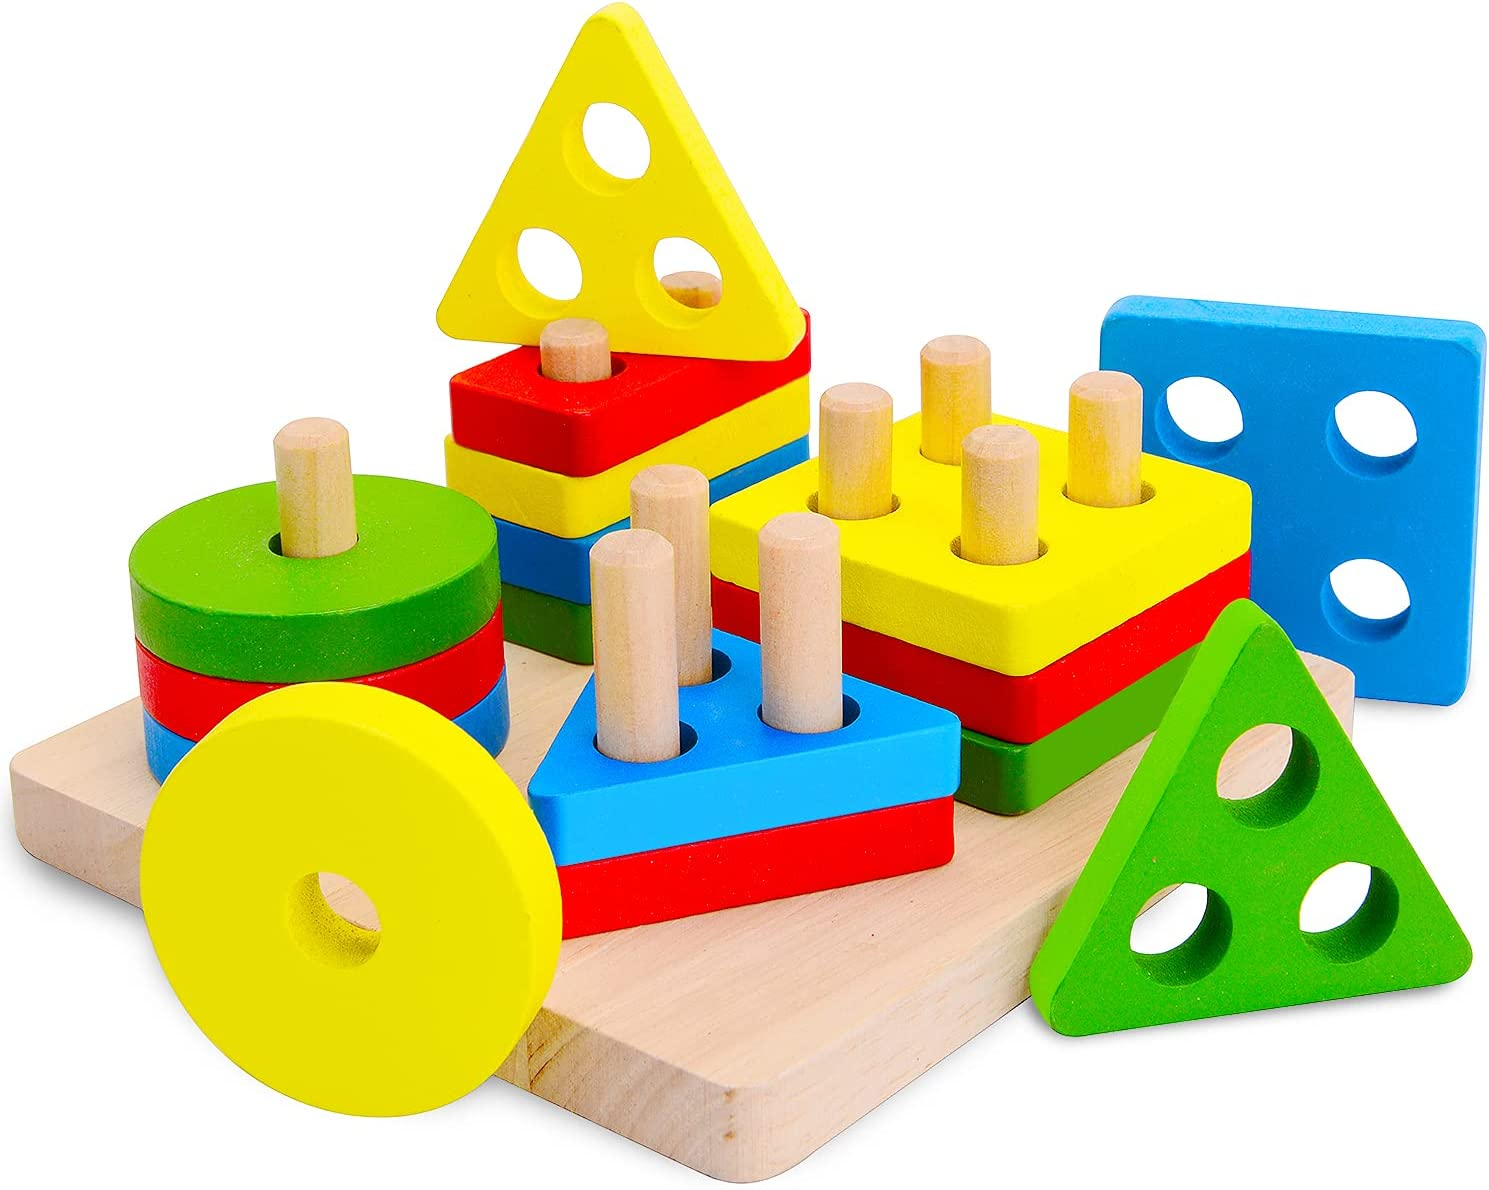 Factory outlet Wooden Sorting Stacking Regular discount Toys Toddlers for Education Preschool